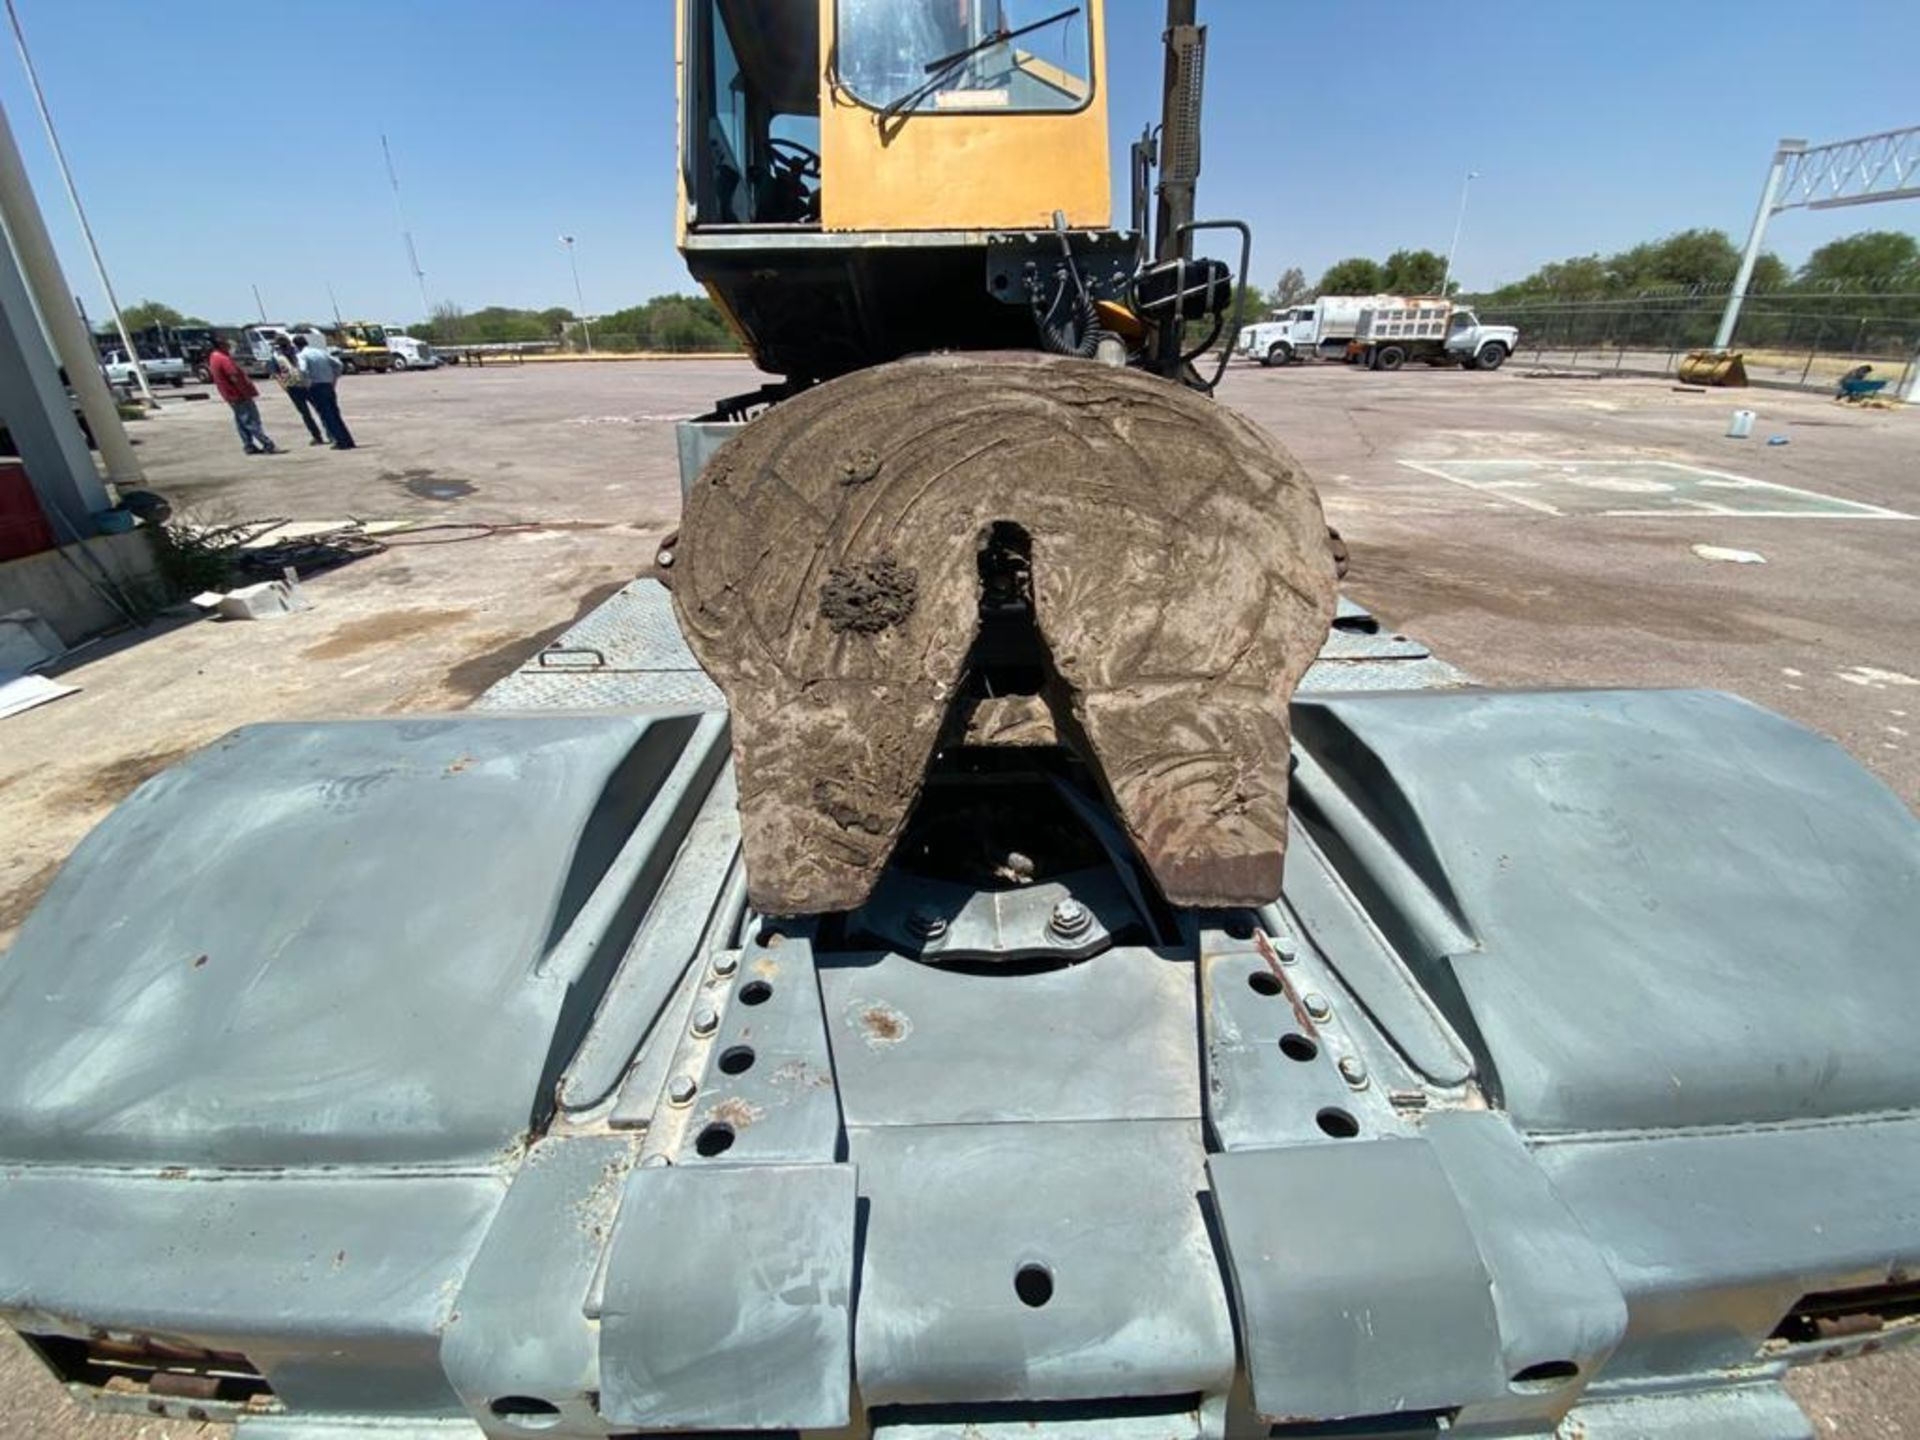 Terberg Capacity 2002 Terminal Tractor, automatic transmission - Image 52 of 57